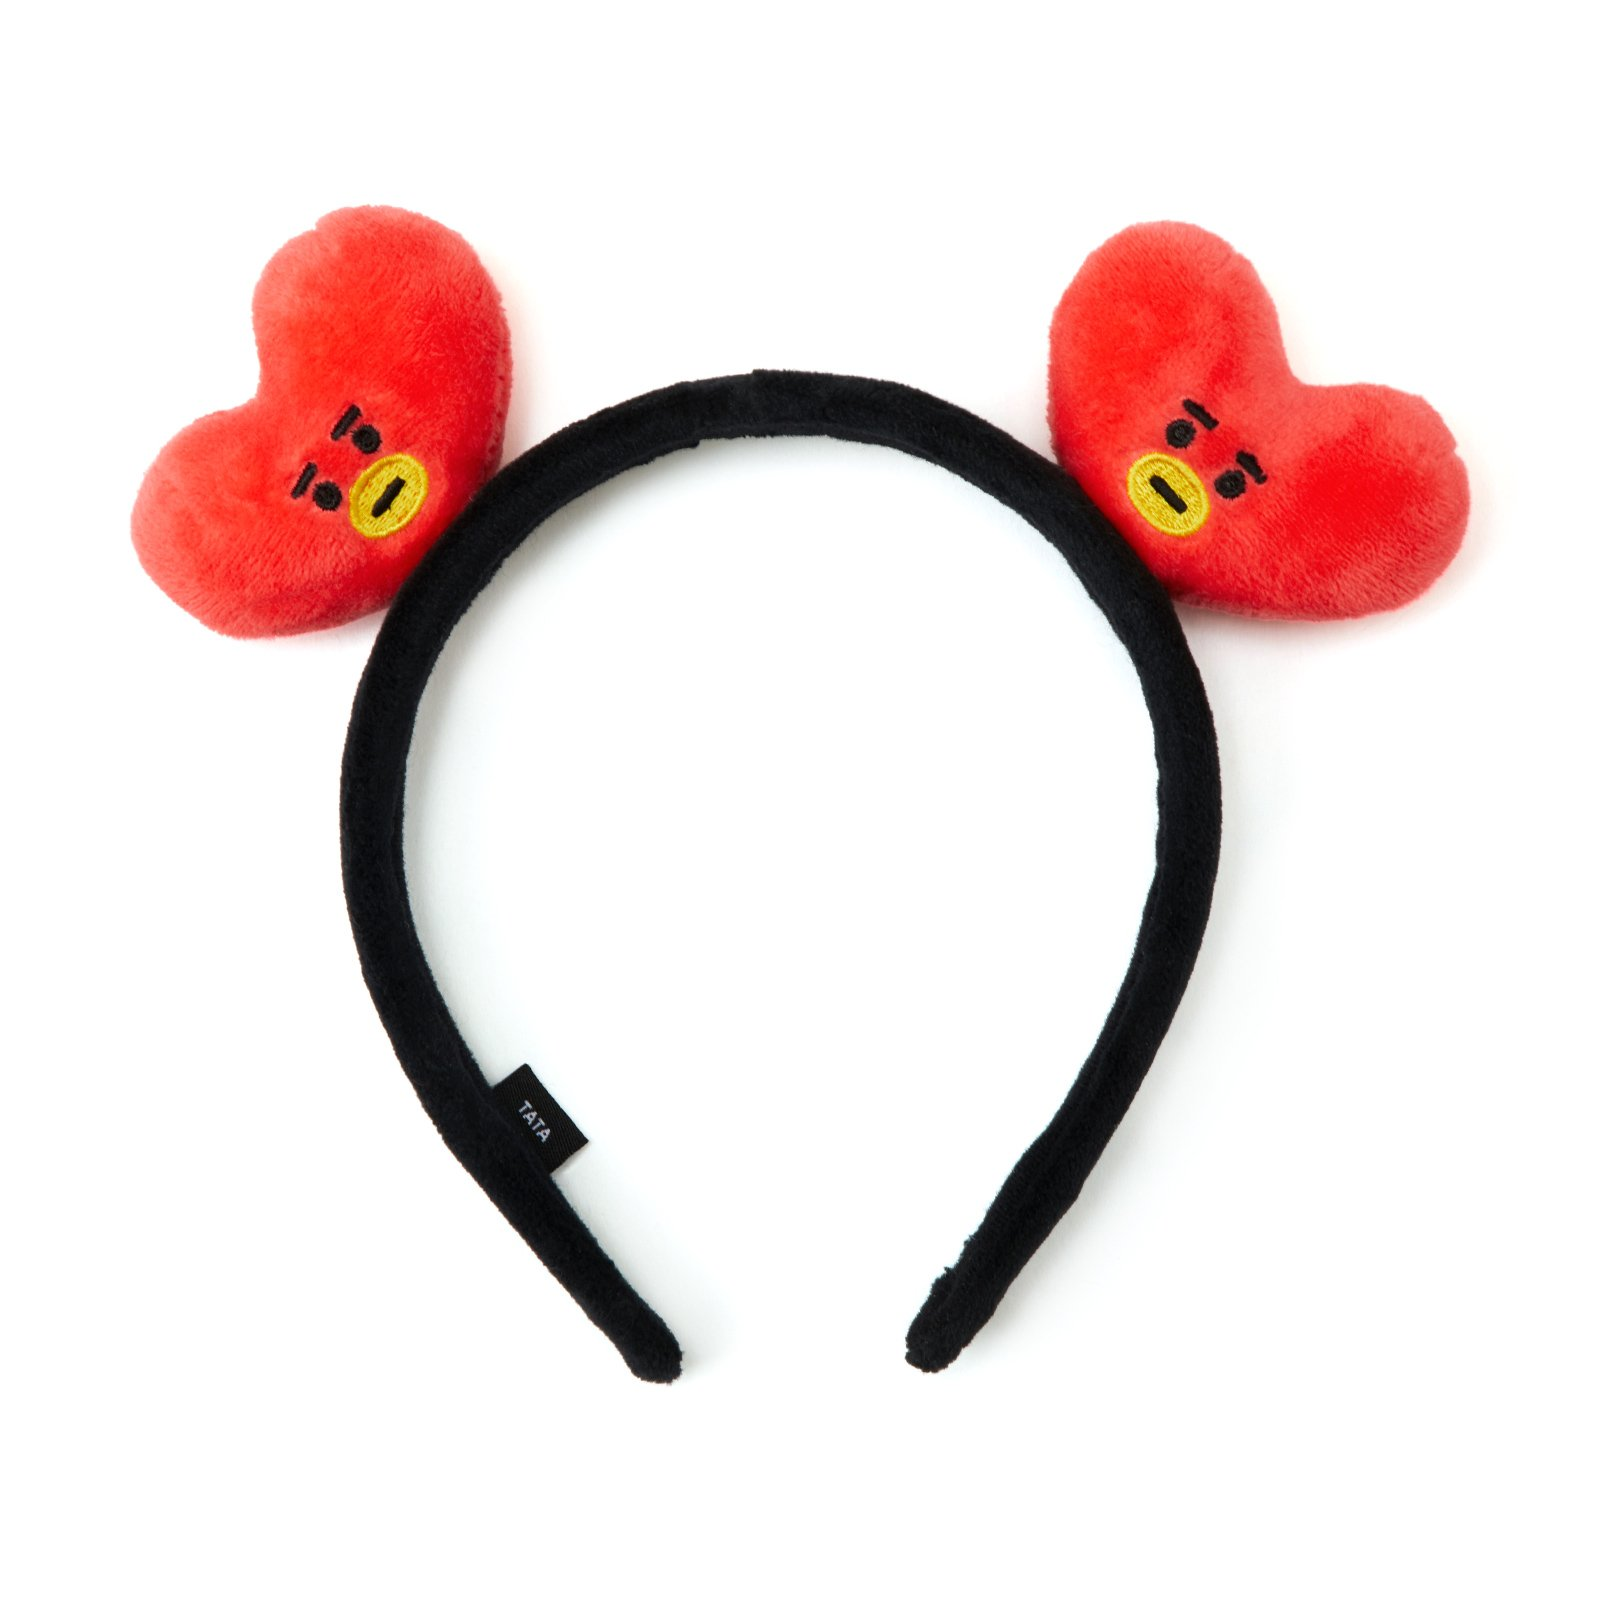 BT21 Tata Hair Band One Size Red_Black